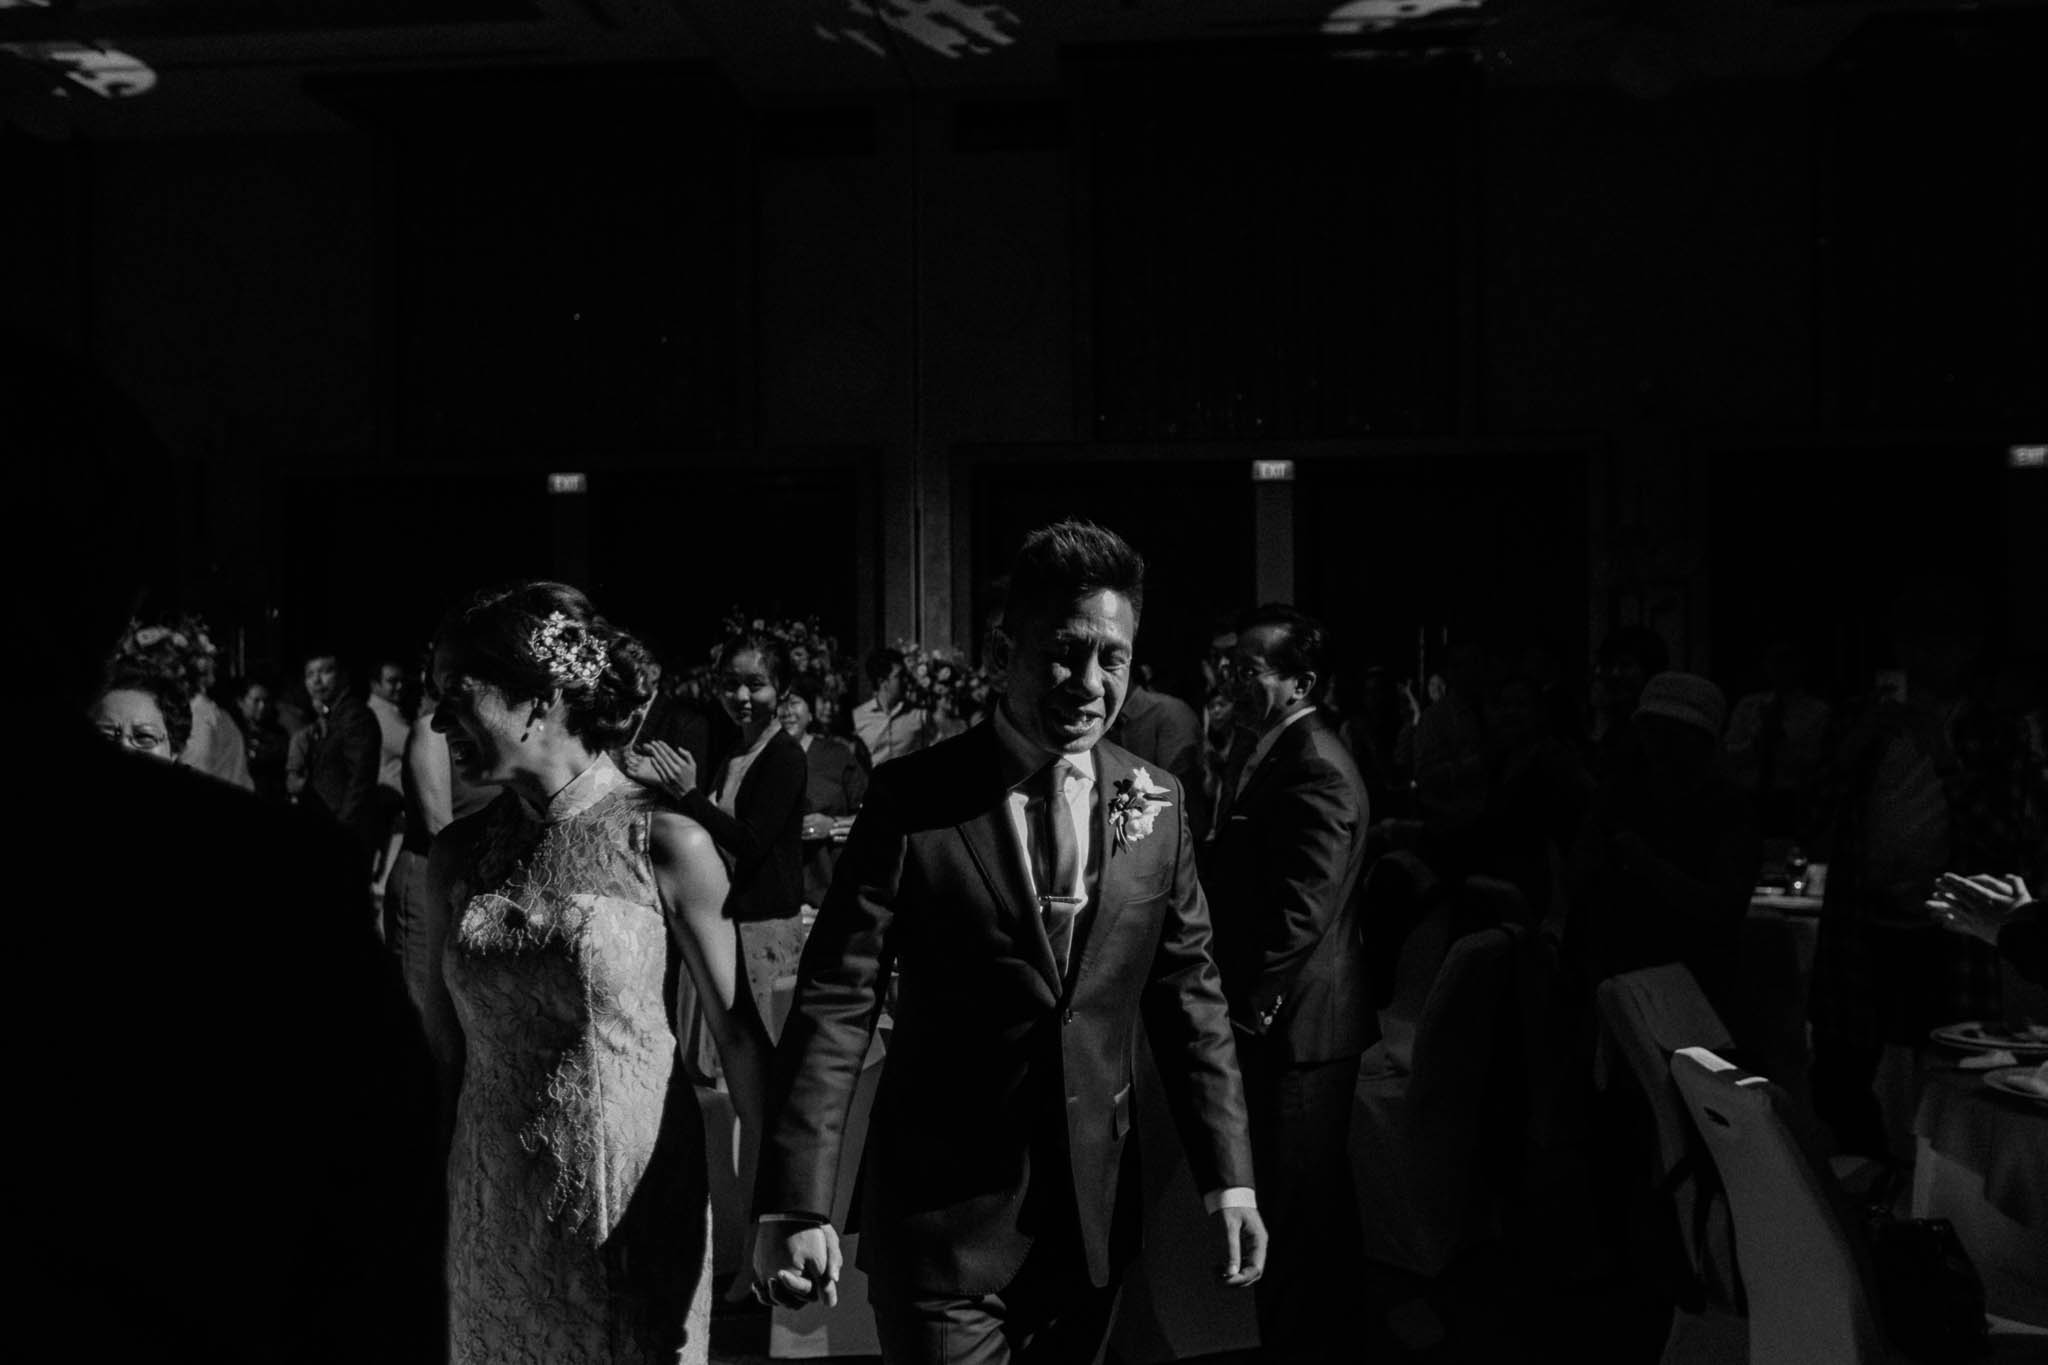 singapore-wedding-photographer-we-made-these-2016-selects-102.jpg